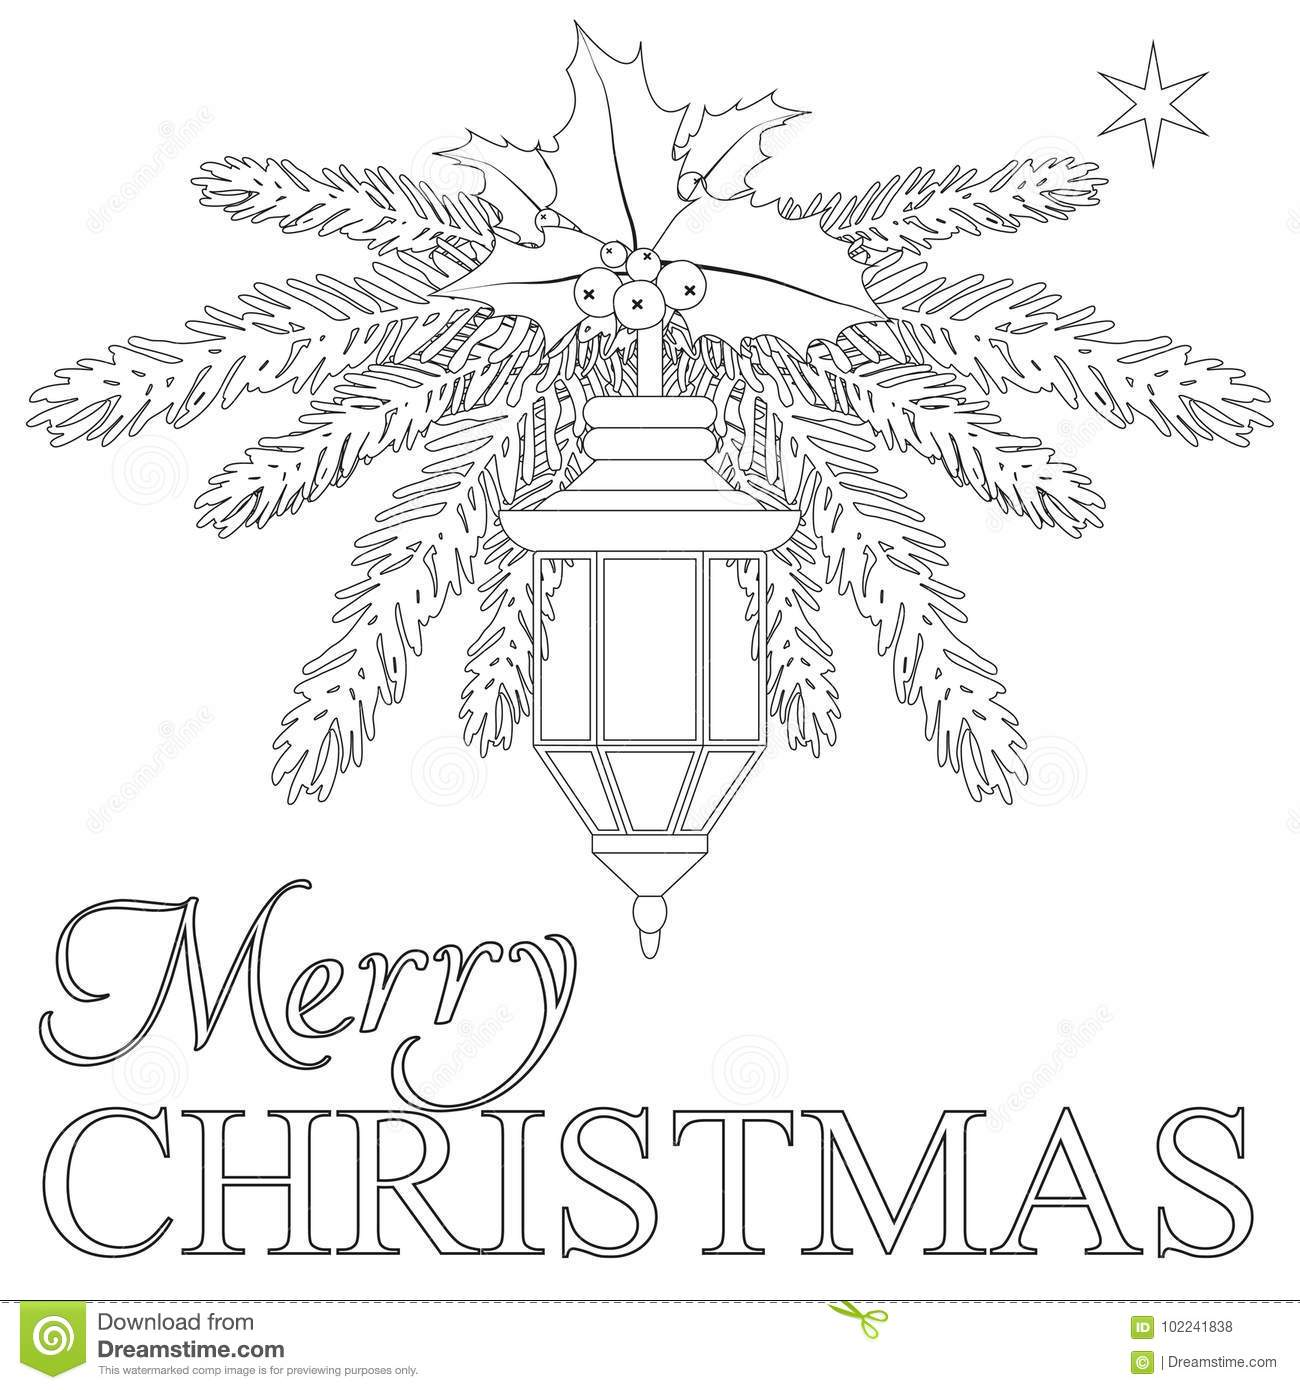 Merry Christmas Coloring Book Page Stock Vector Illustration Of